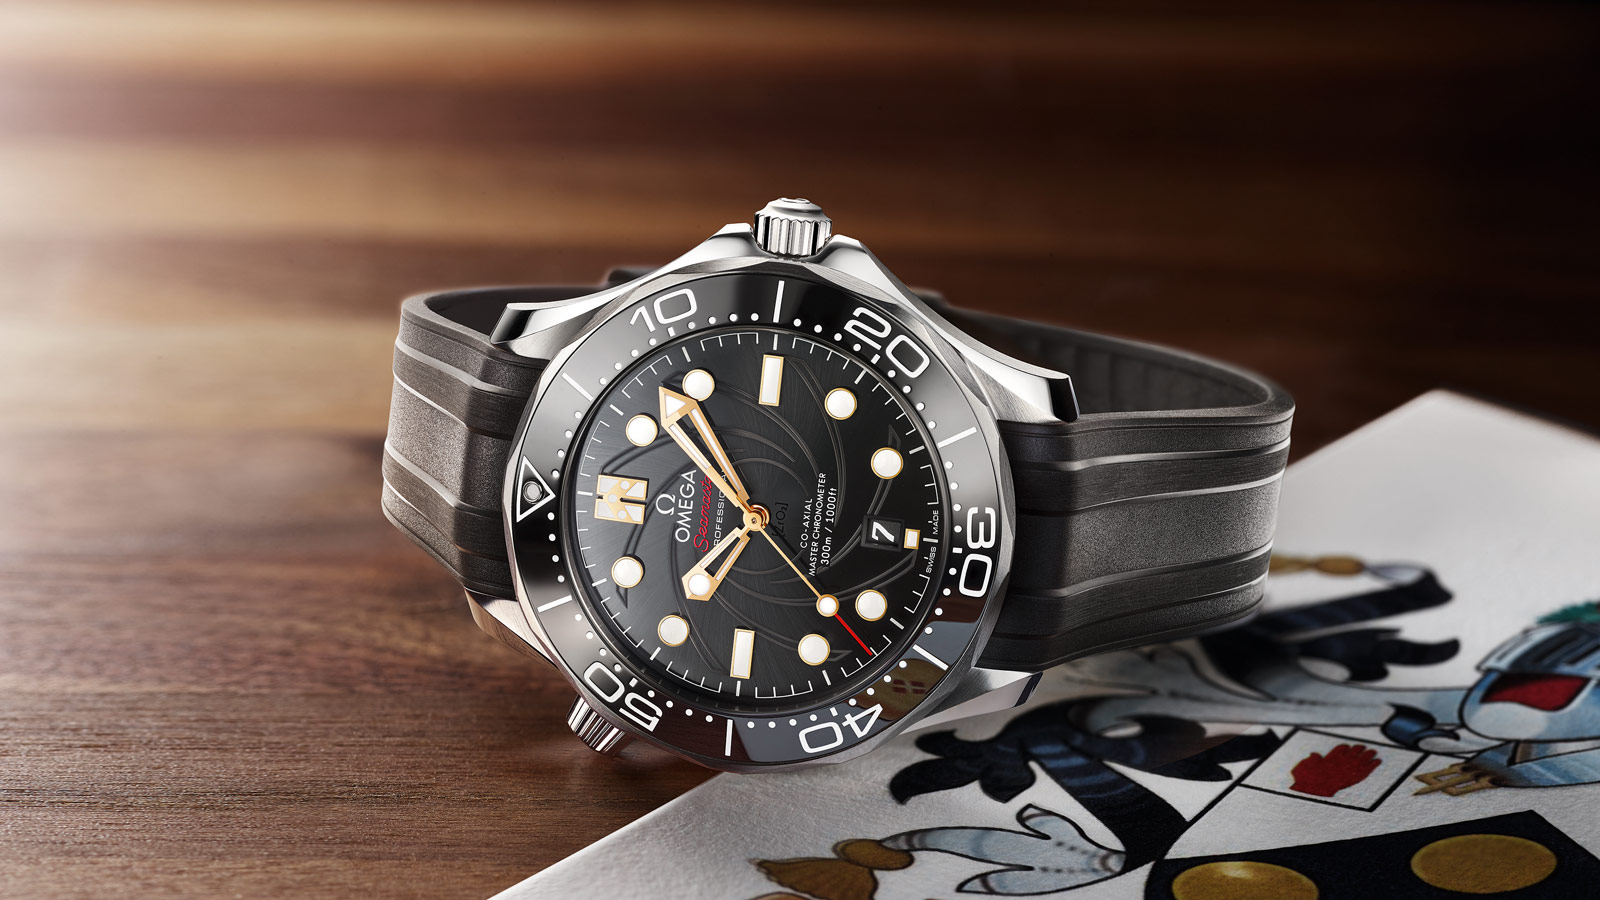 Seamaster Diver 300 M Diver 300M Omega Co‑Axial Master Chronometer 42 mm Watch - 210.22.42.20.01.004